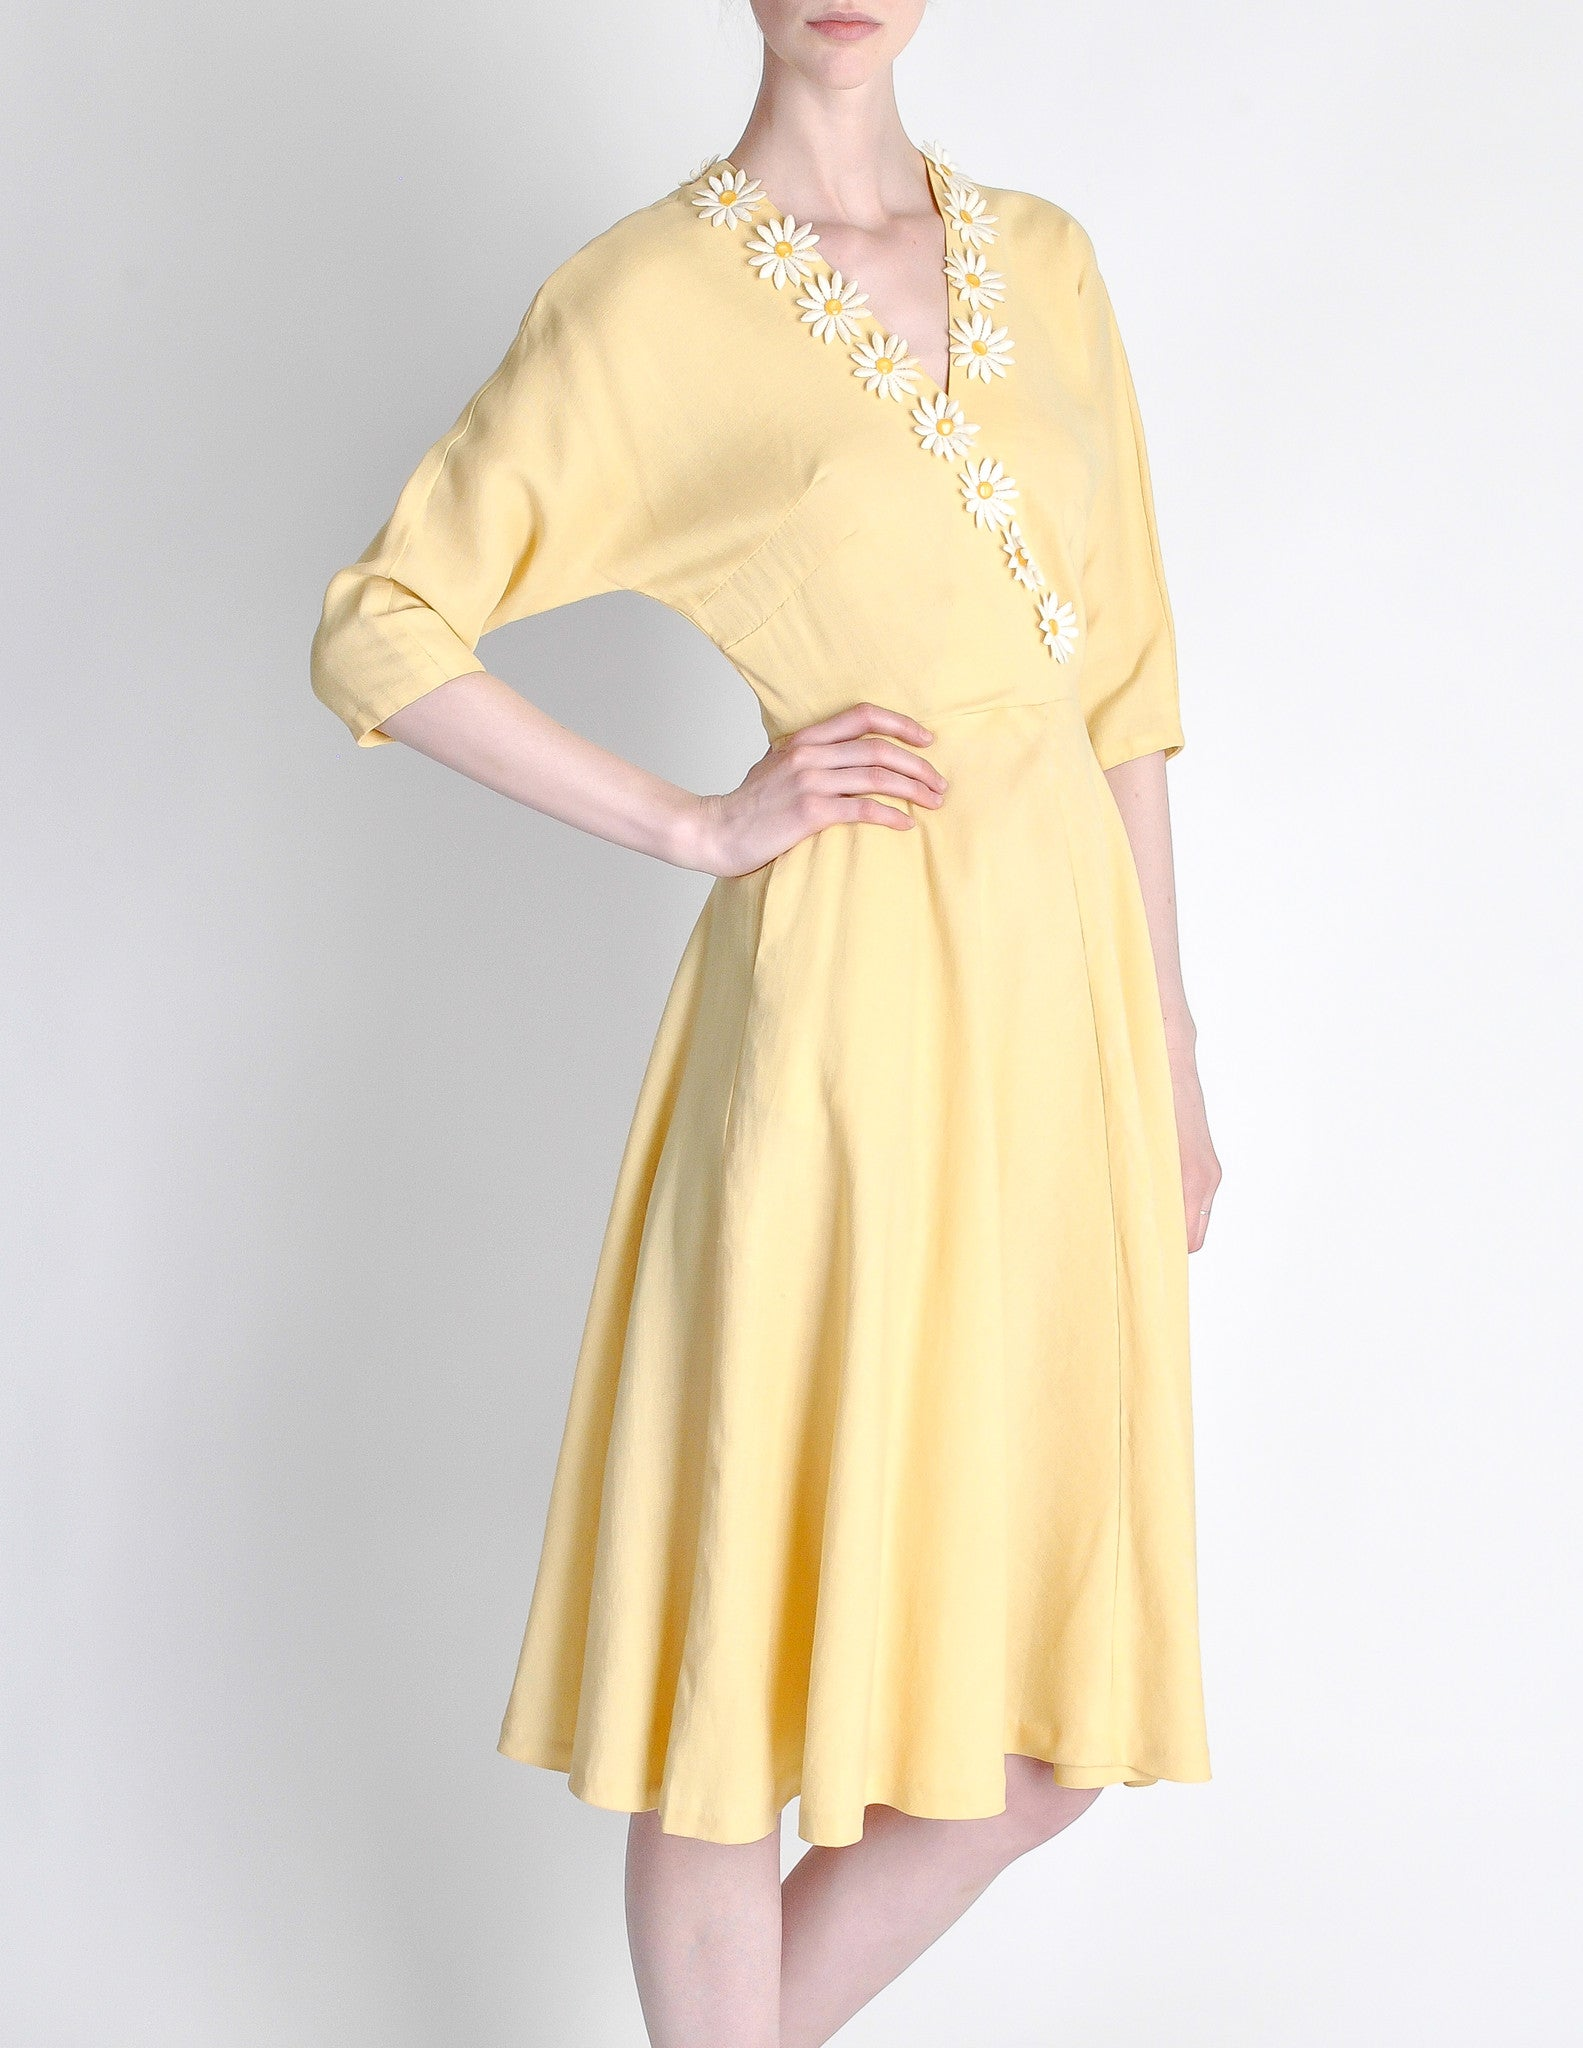 768aac4fb Vintage 1940s Yellow Linen Daisy Dress - from Amarcord Vintage Fashion